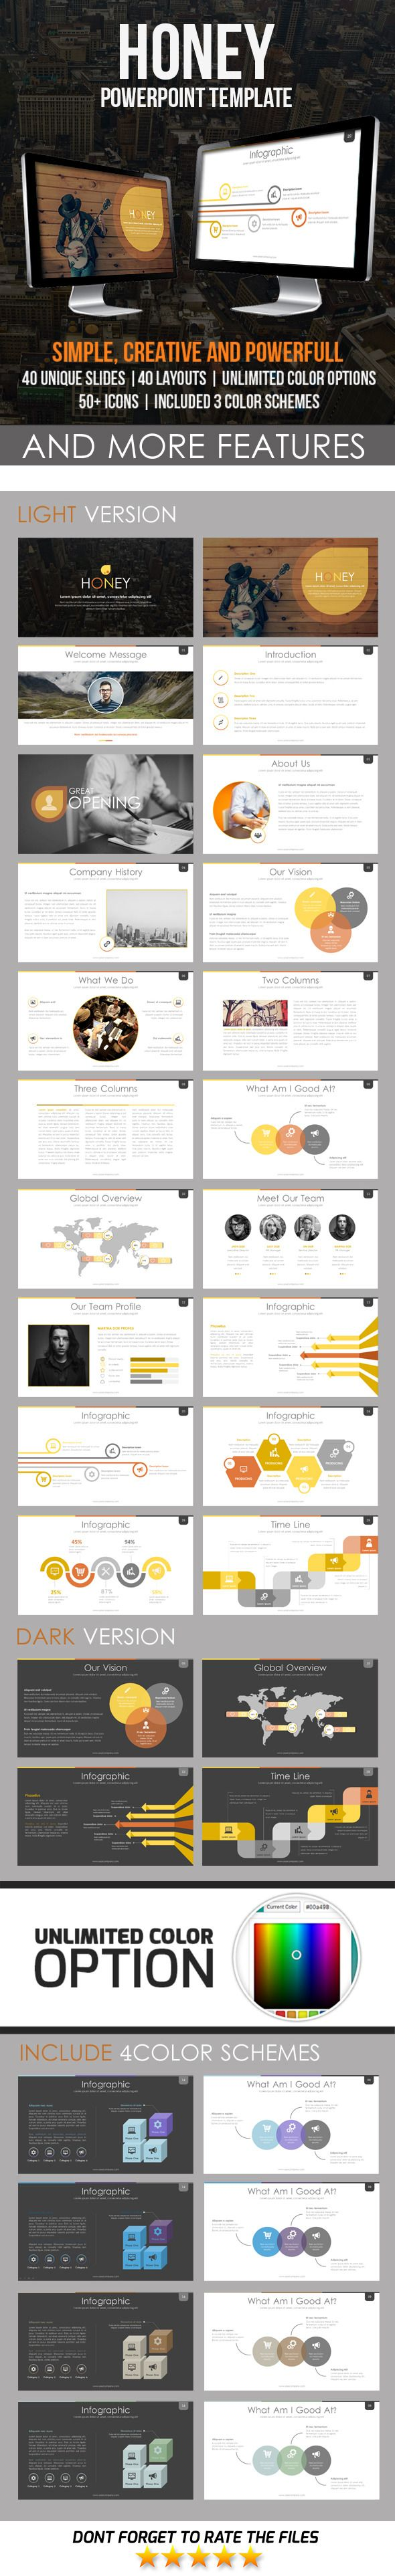 Honey PowerPoint Template #design Download: http://graphicriver.net/item/honey-powerpoint-template/11548292?ref=ksioks